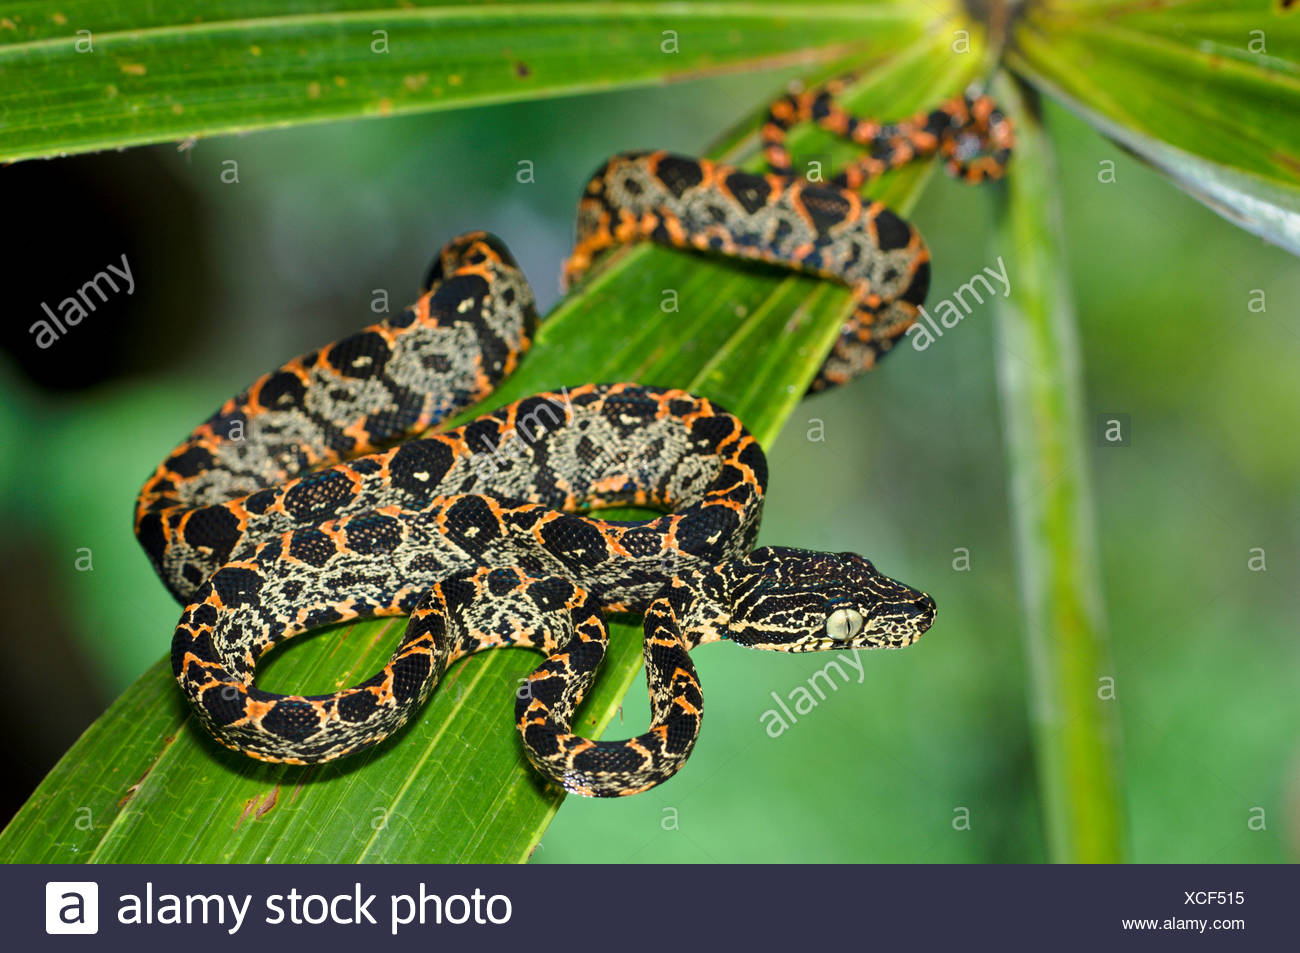 Garden Tree Boa Stock Photos & Garden Tree Boa Stock Images - Alamy